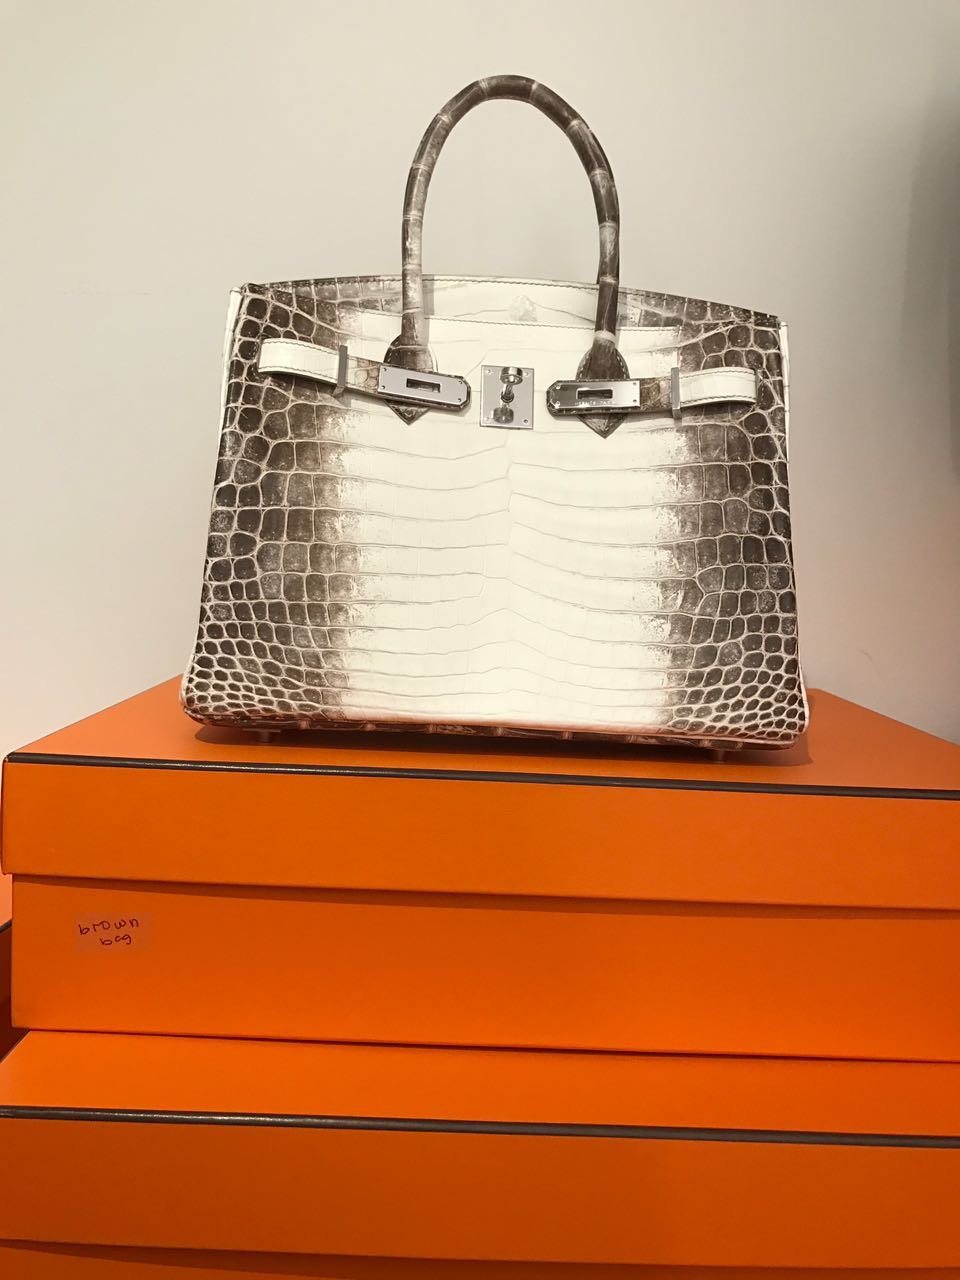 e2dc425f13b3 The Journey of an Avid Hermes Collector - PurseBop